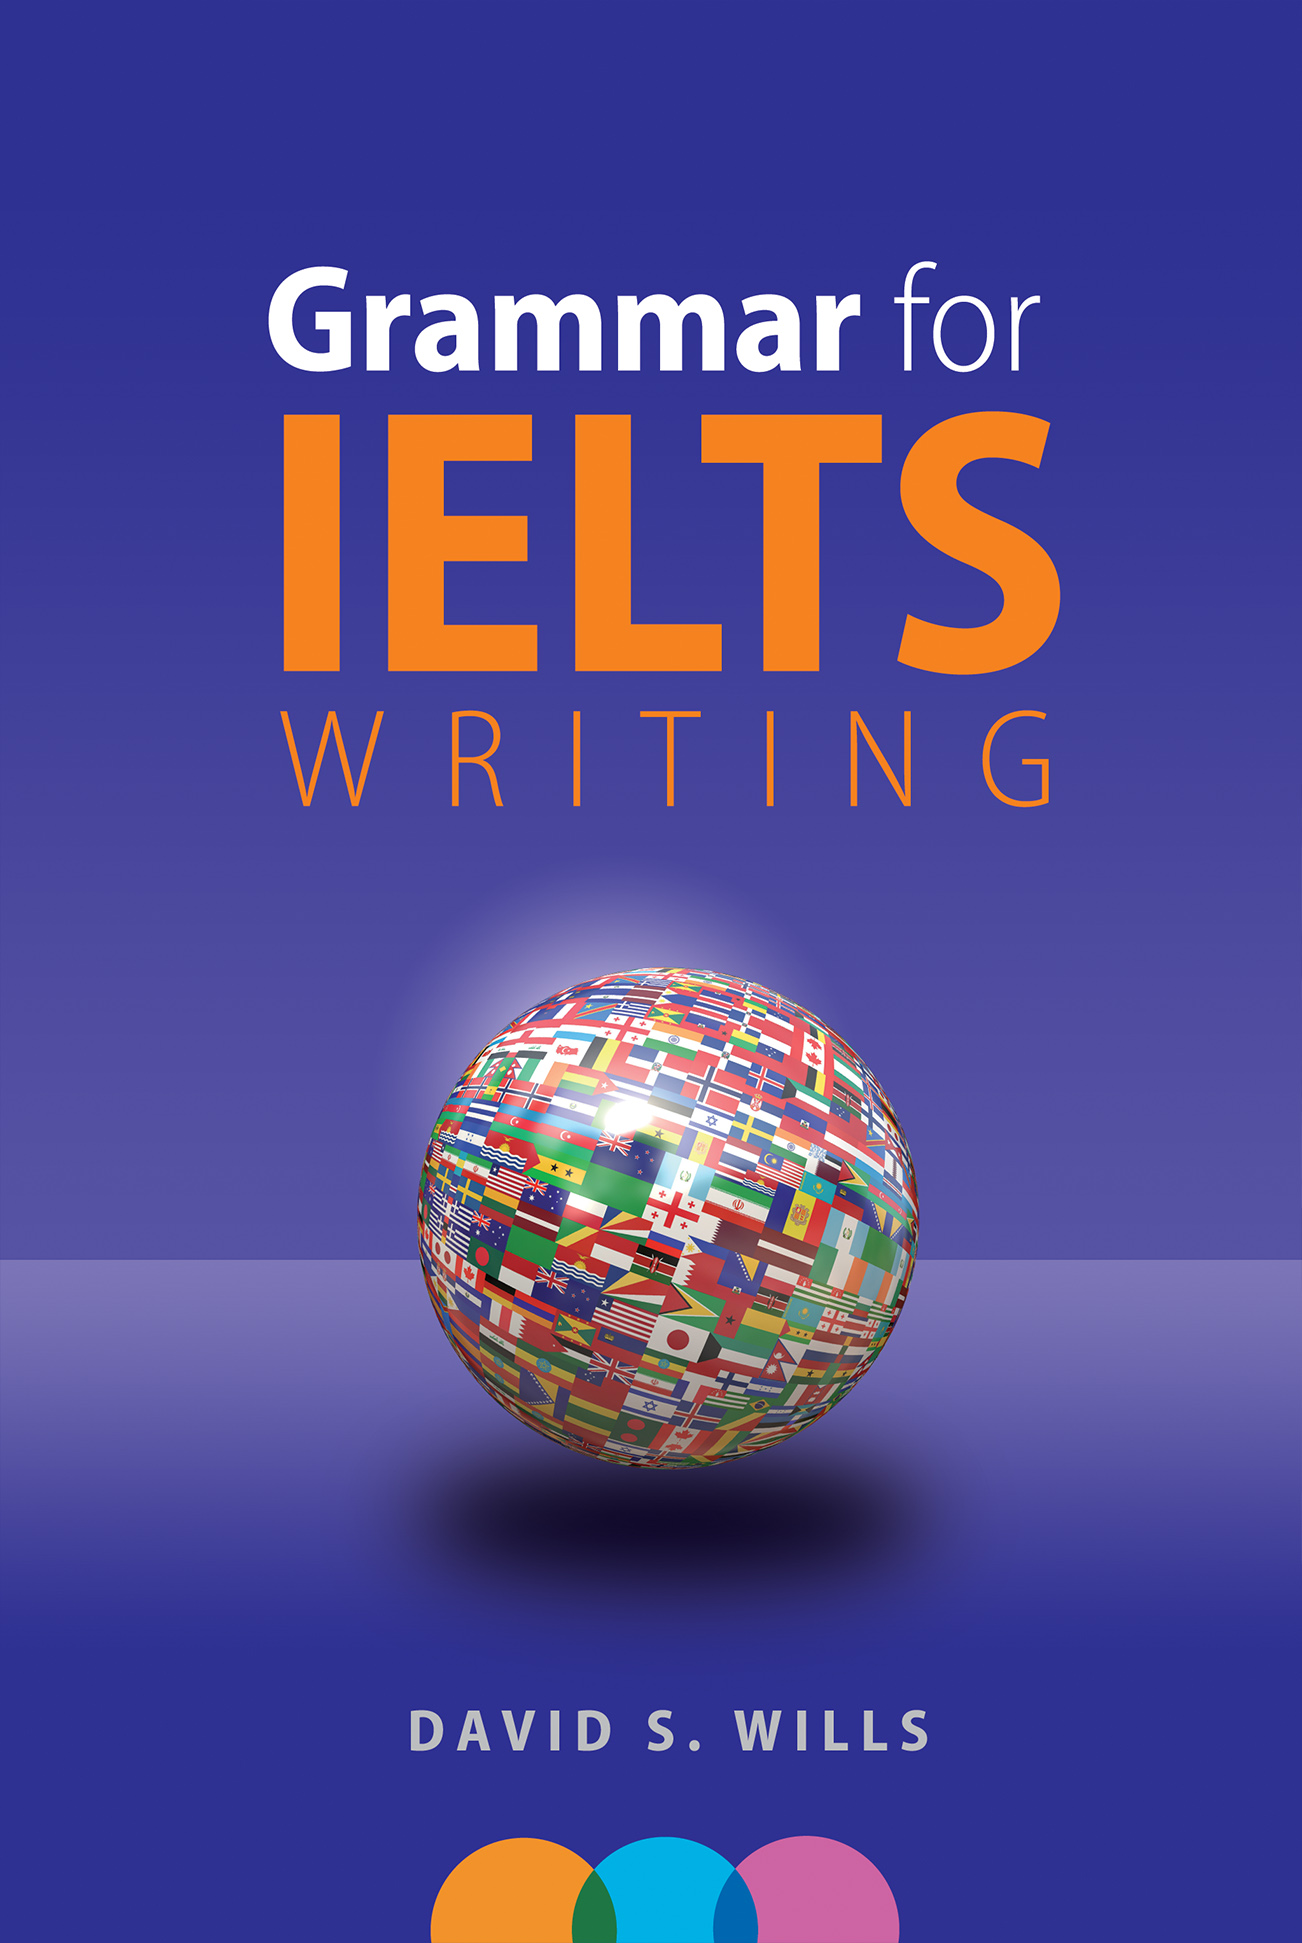 new cover Small - IELTS Speaking Questions: Health